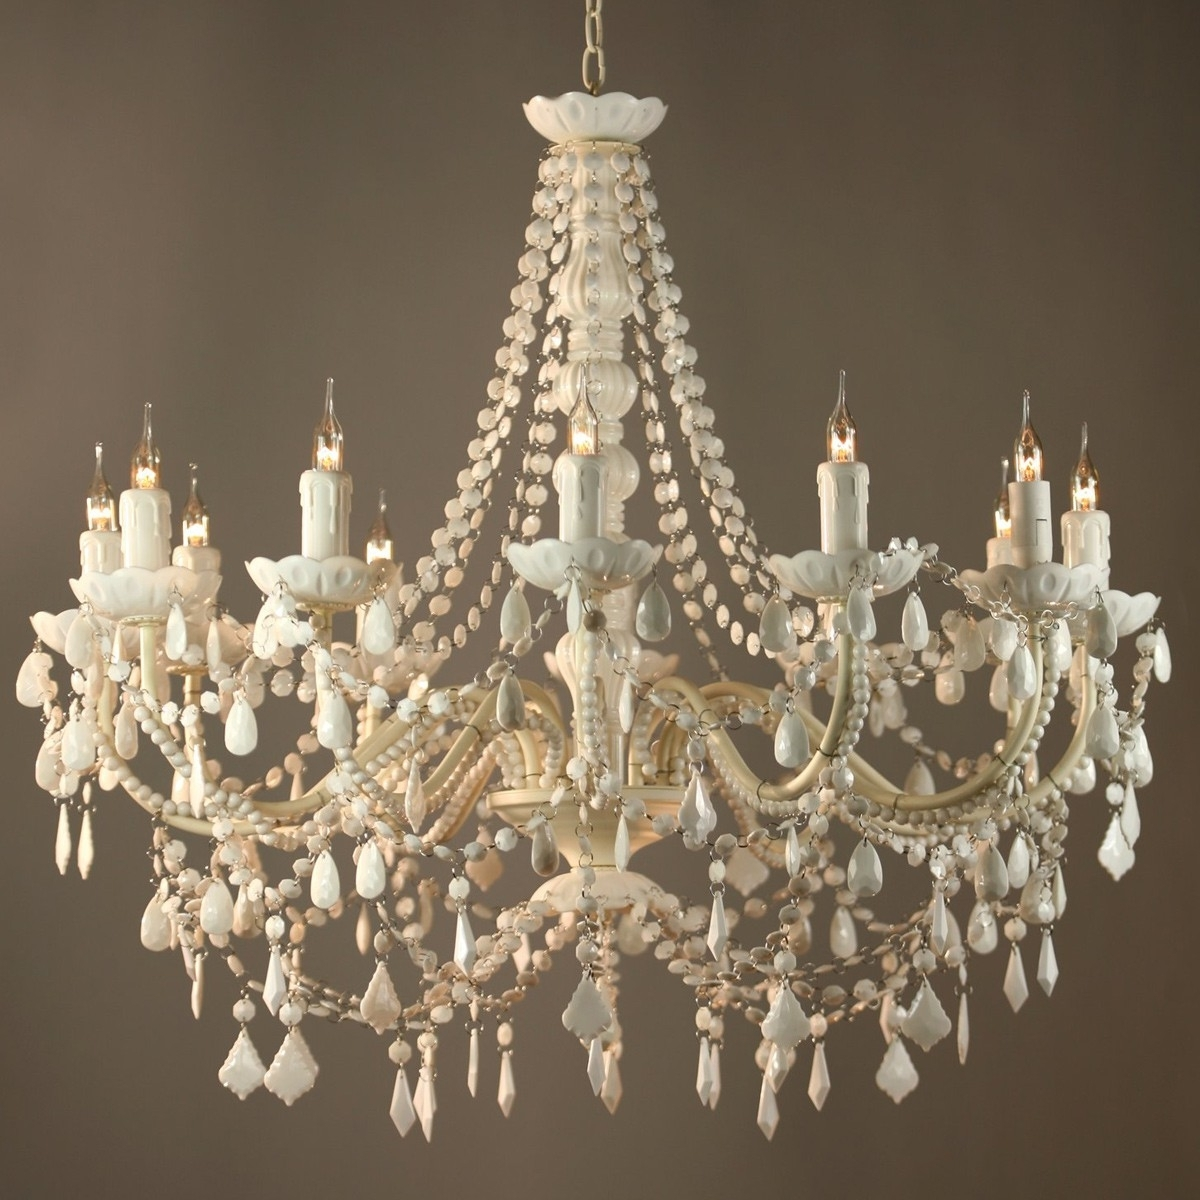 Vintage Style Chandeliers (View 3 of 15)